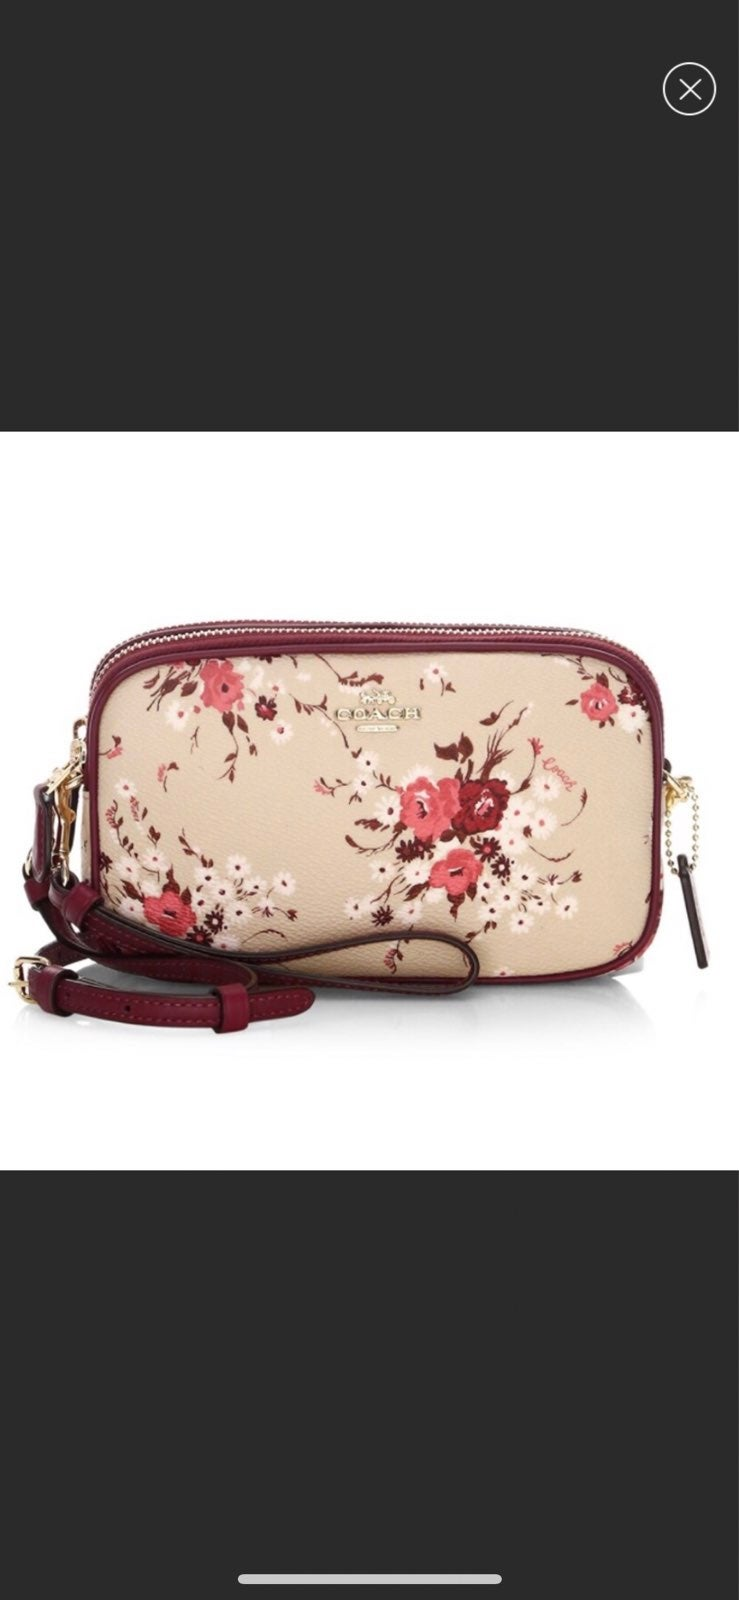 Coach Sadie Floral Leather Crossbody